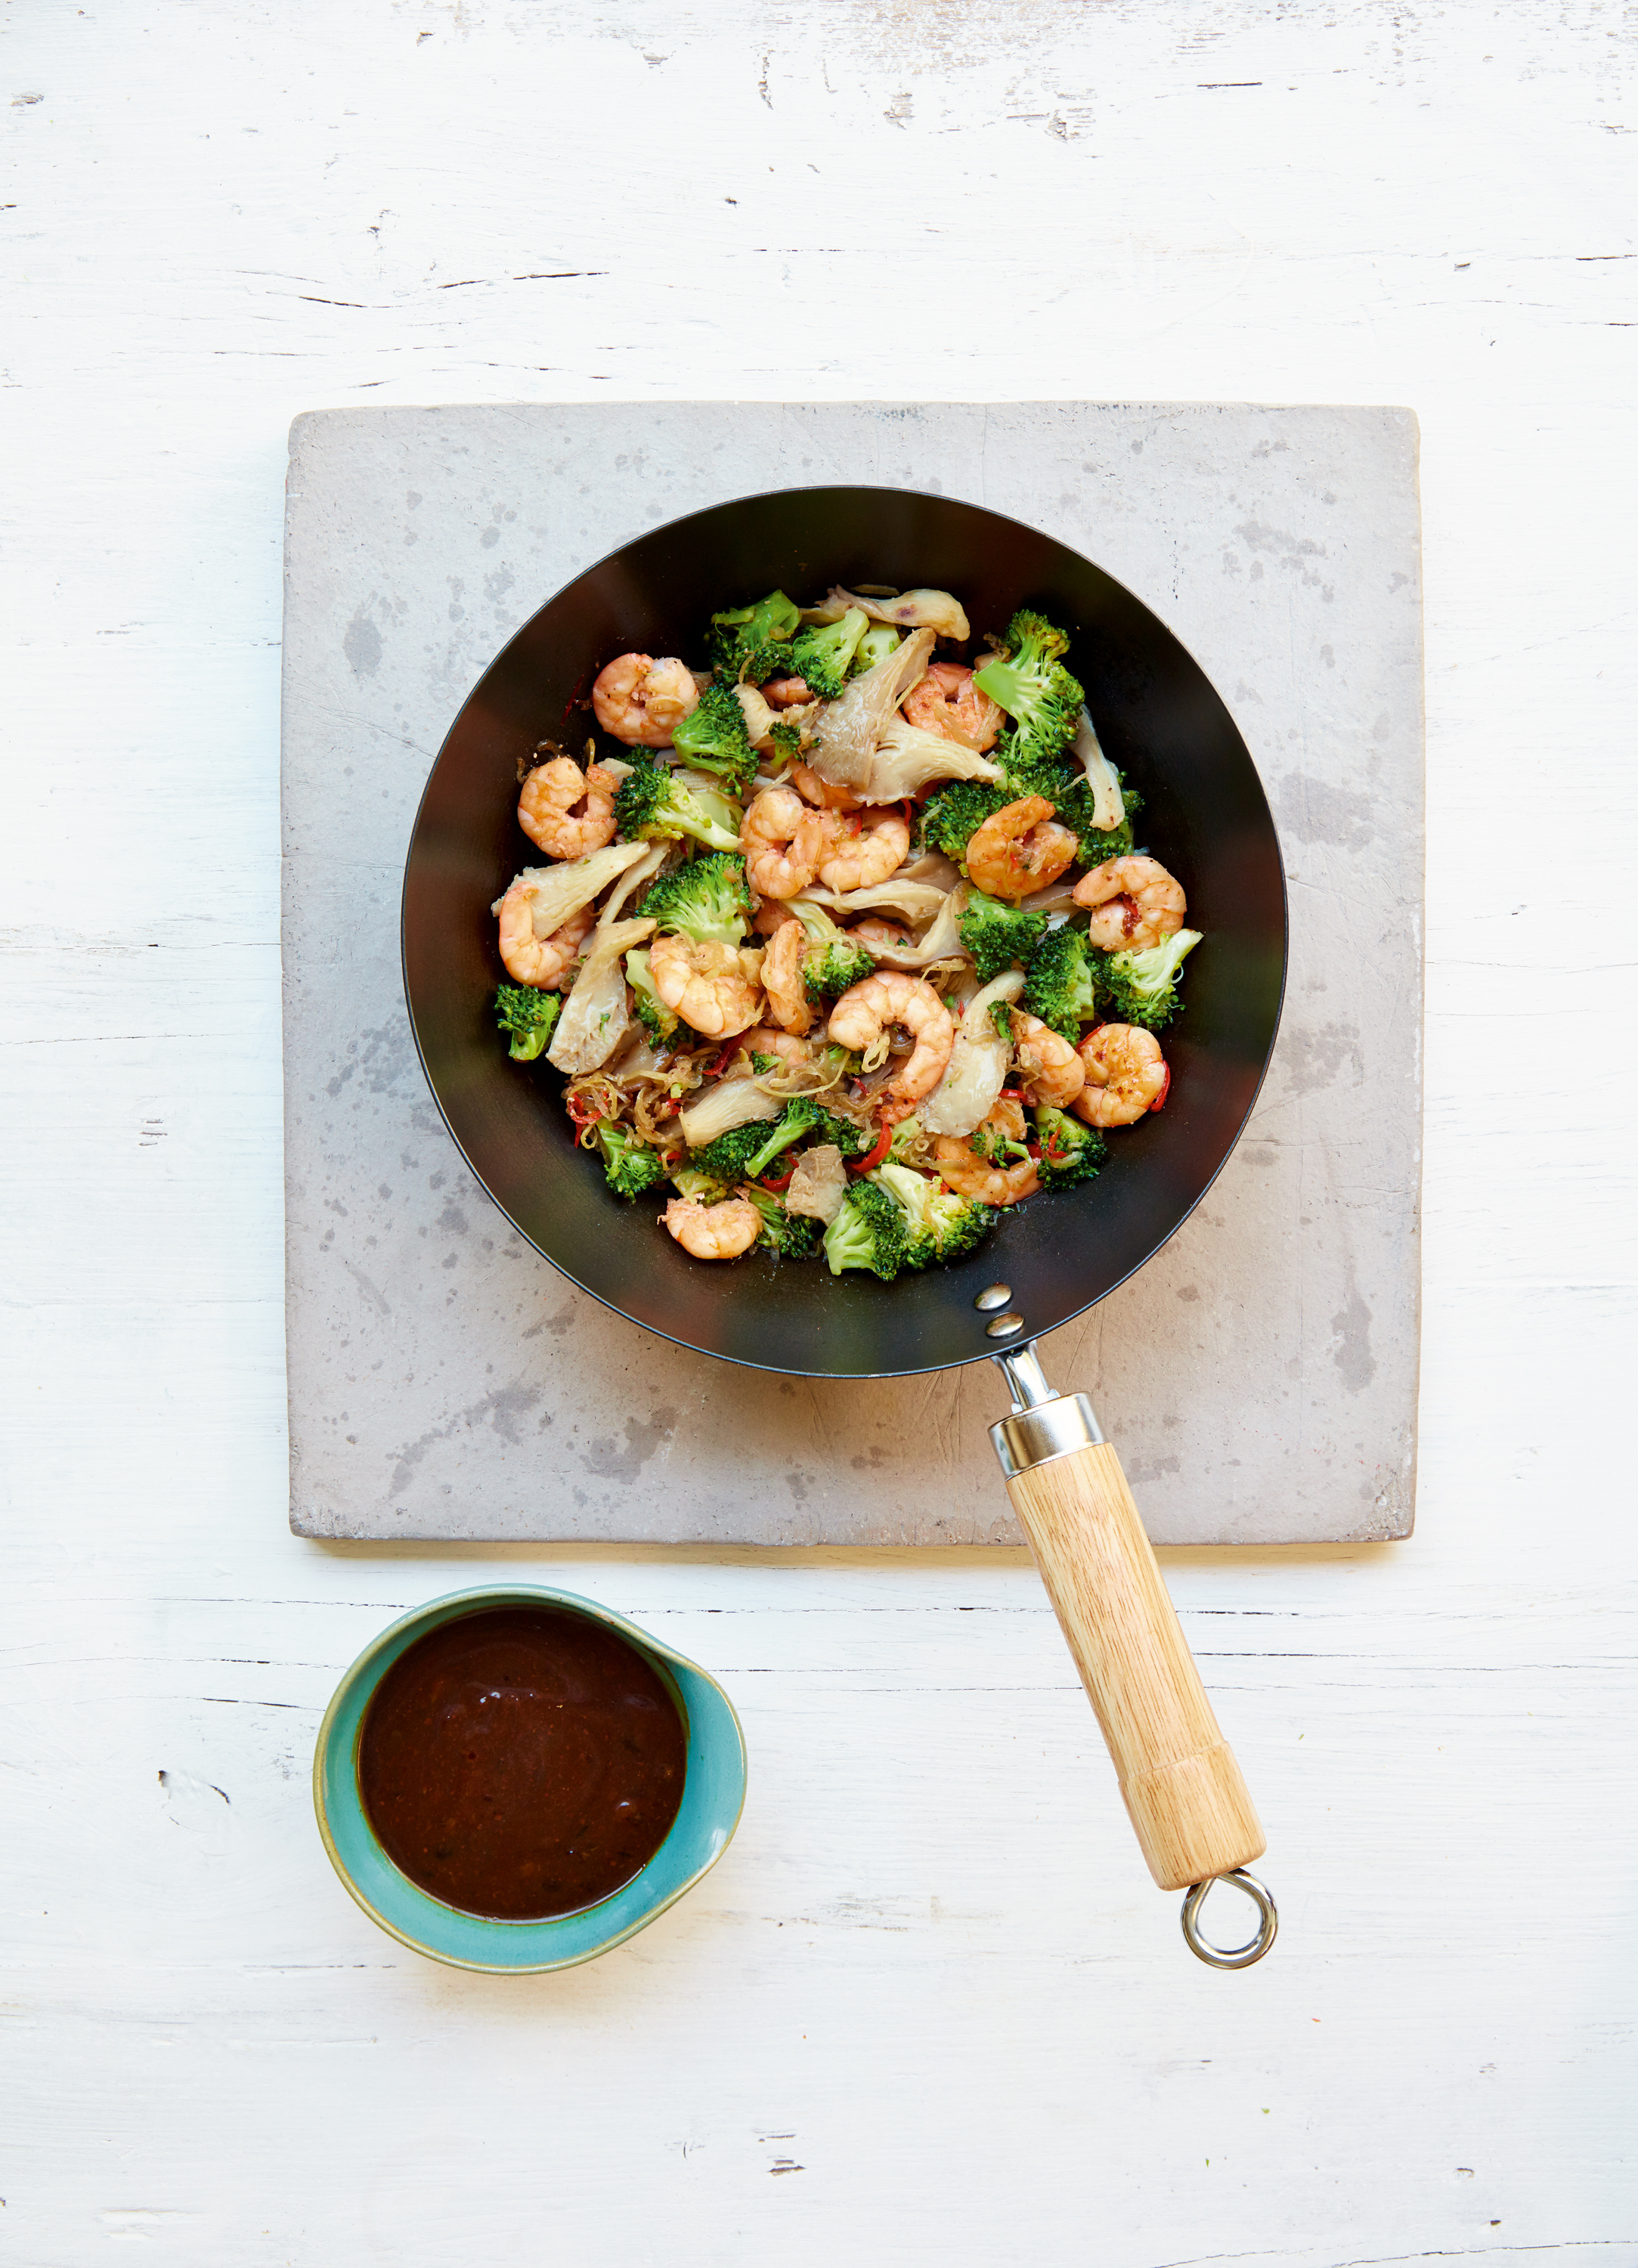 king prawn and broccoli stir fry from Mary Berry Quick Cooking (Georgia Glynn Smith/PA)